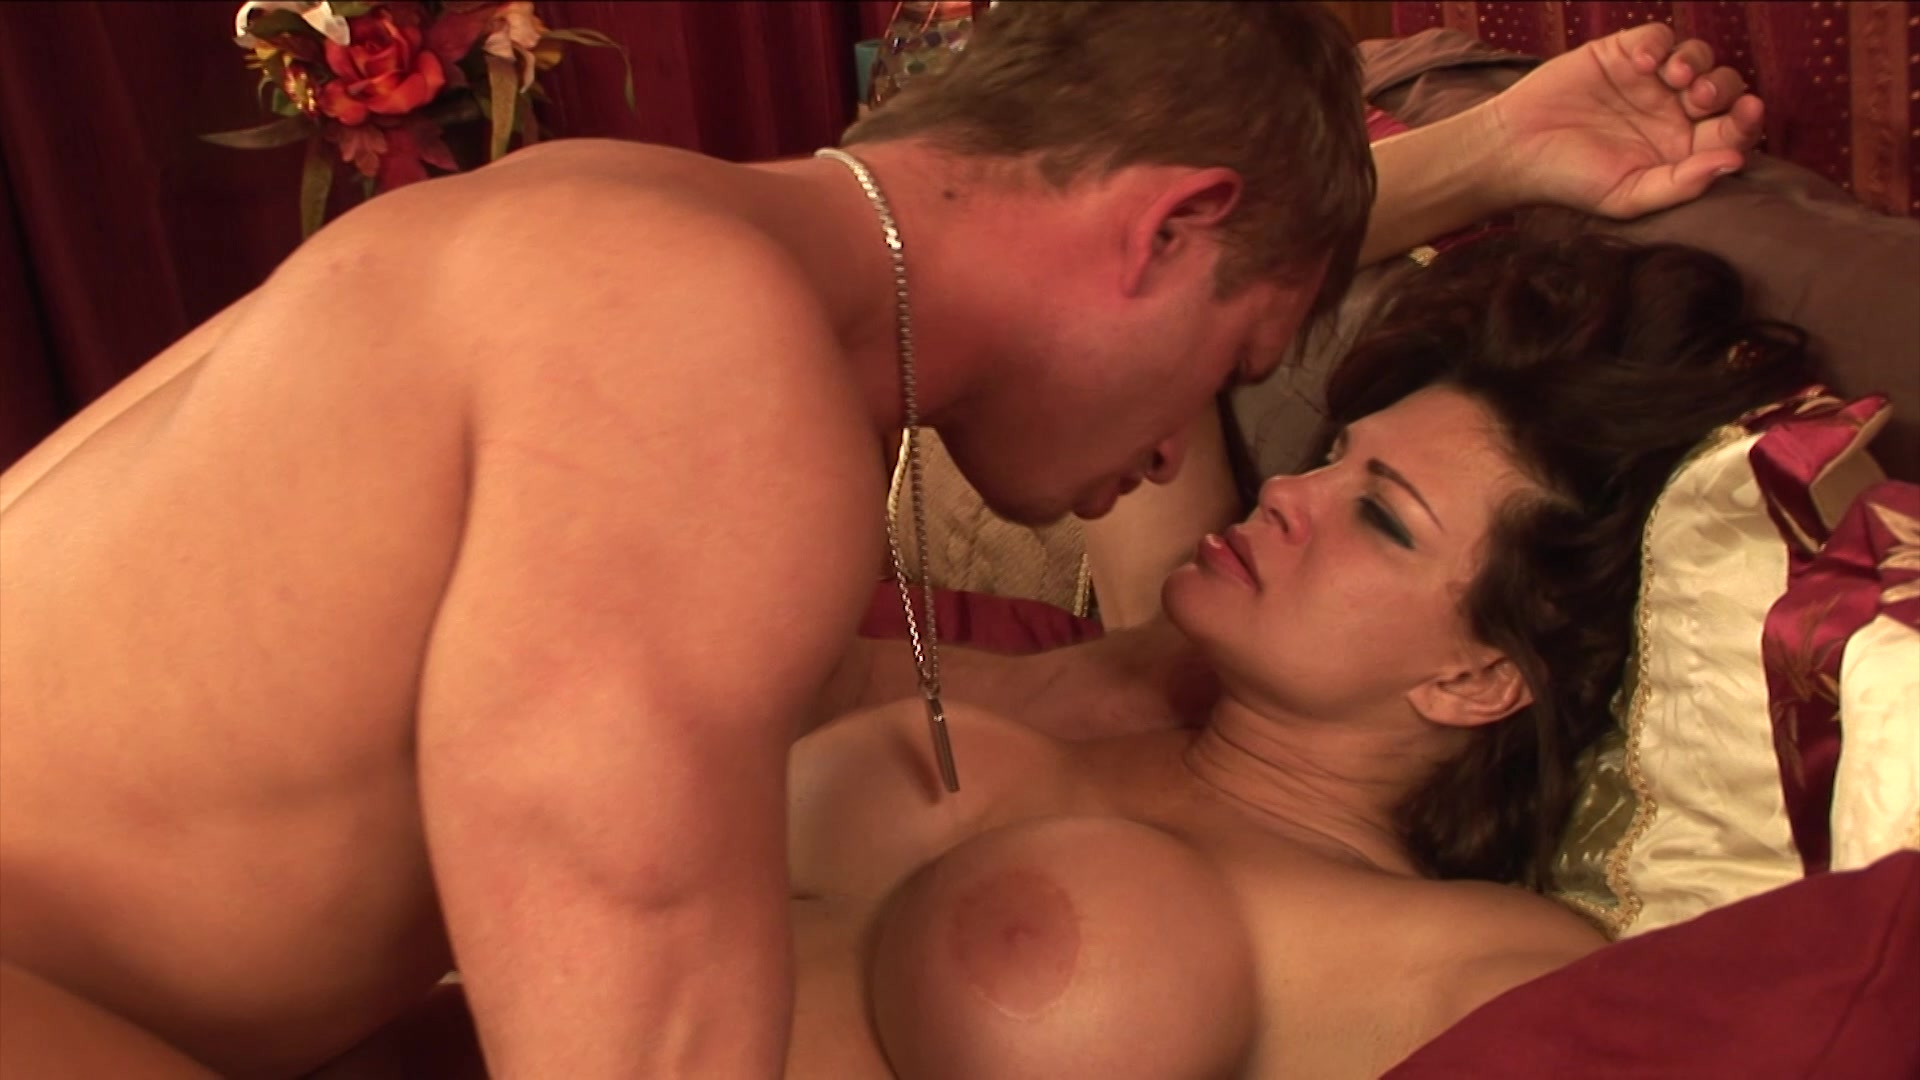 Porn star terri, carrying a sexy girl naked and fucking her